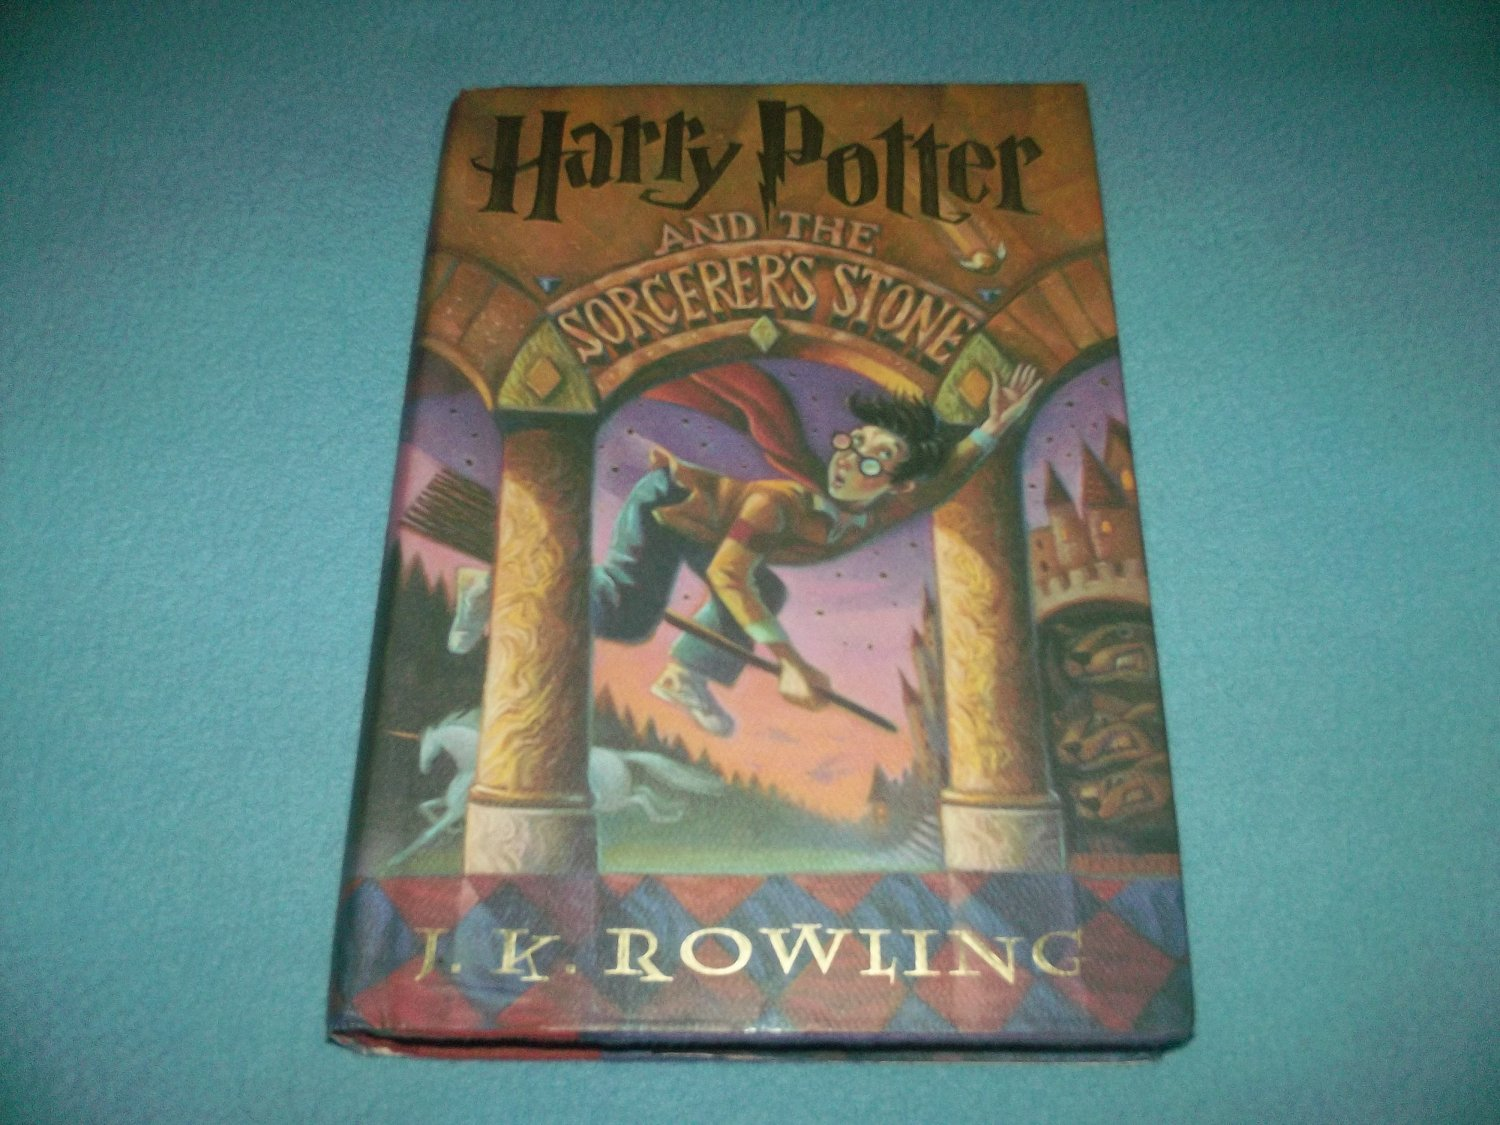 Harry Potter Book Lengths Pages : Harry potter and the sorcerer s stone hc book j k rowling